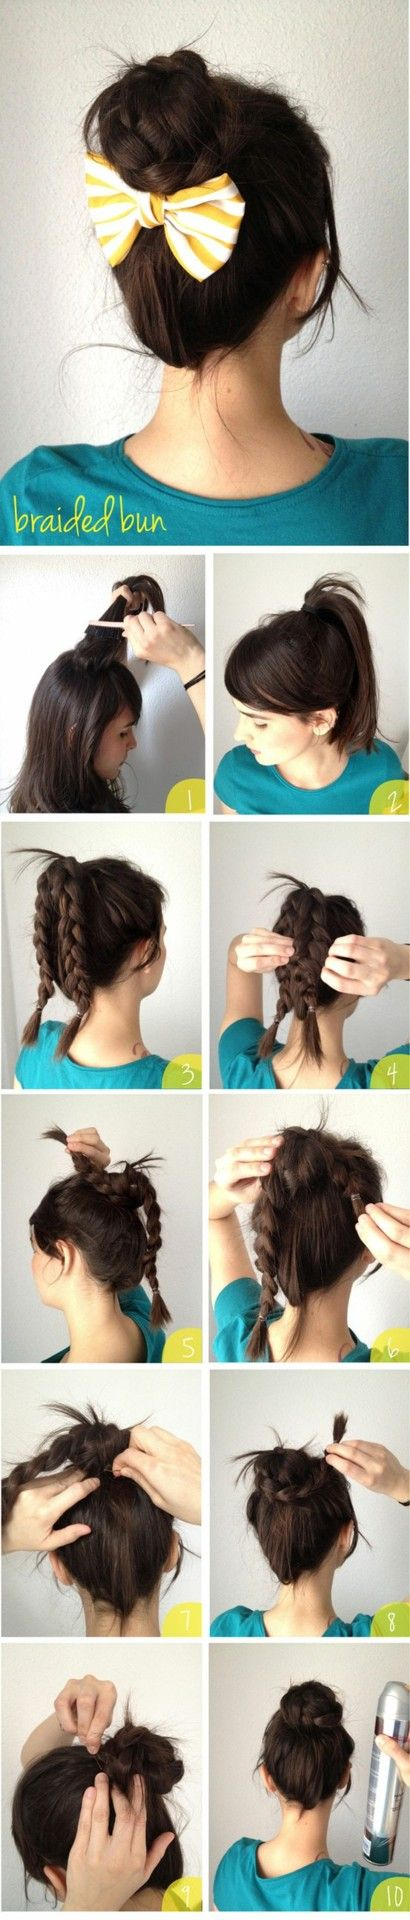 best easy hair images on pinterest cute hairstyles casual